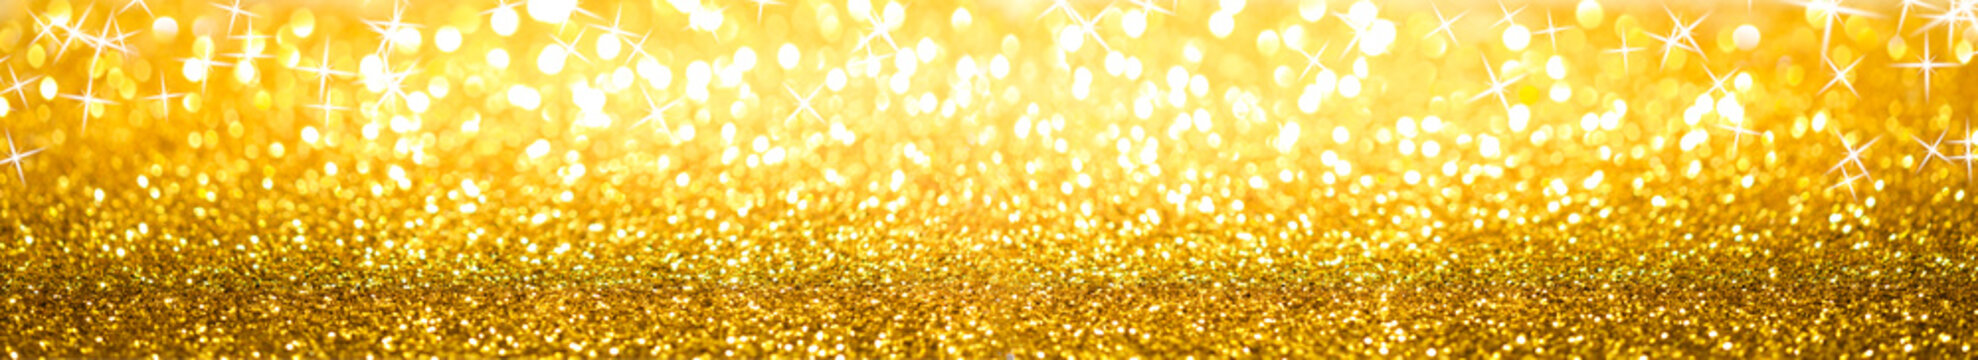 Golden Glitter Background Banner With Sparkles And Bokeh